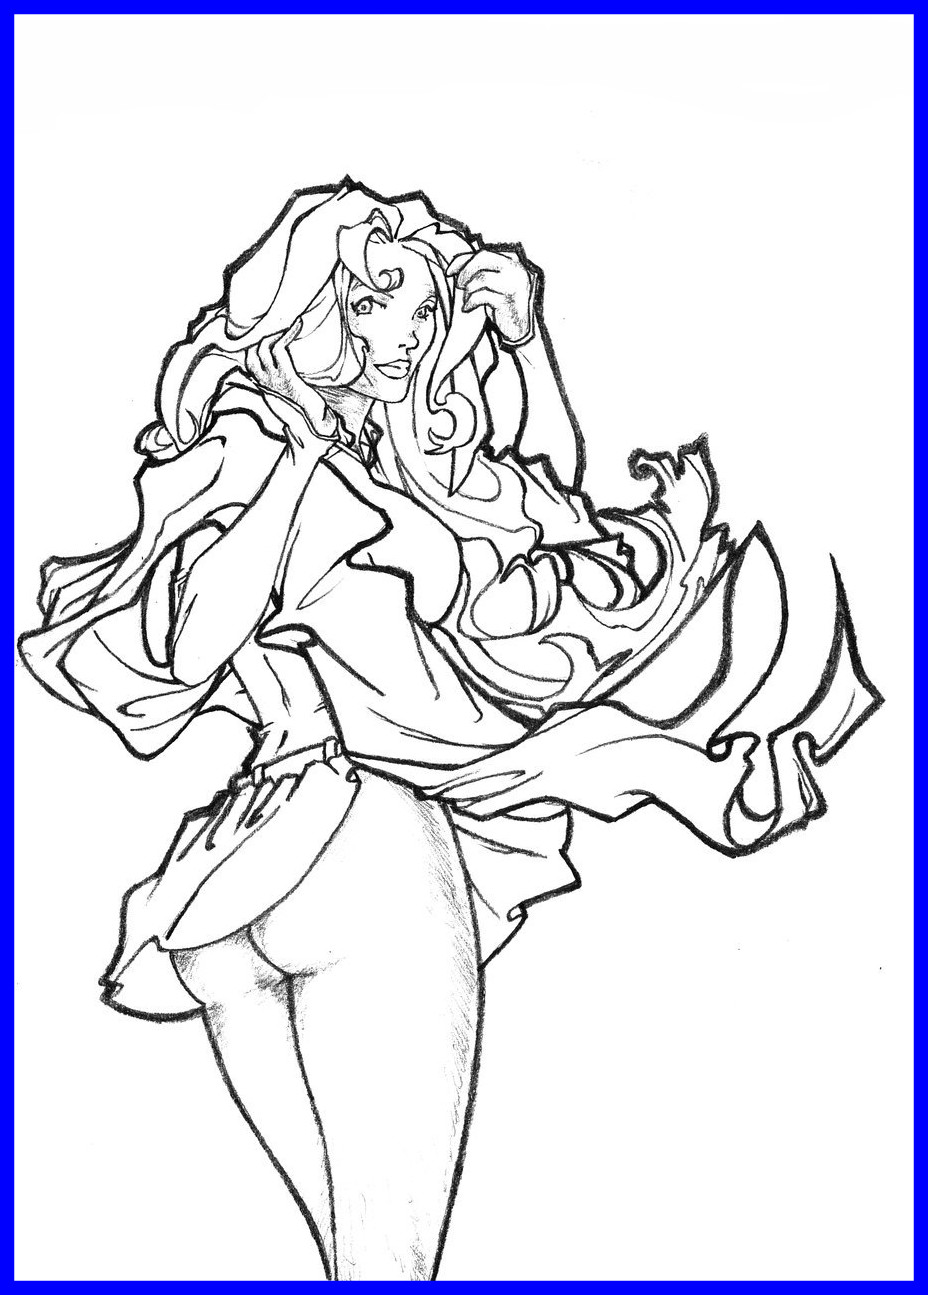 928x1295 Amazing Supergirl Coloring Pages Coloringsuite Pics For Super Girl